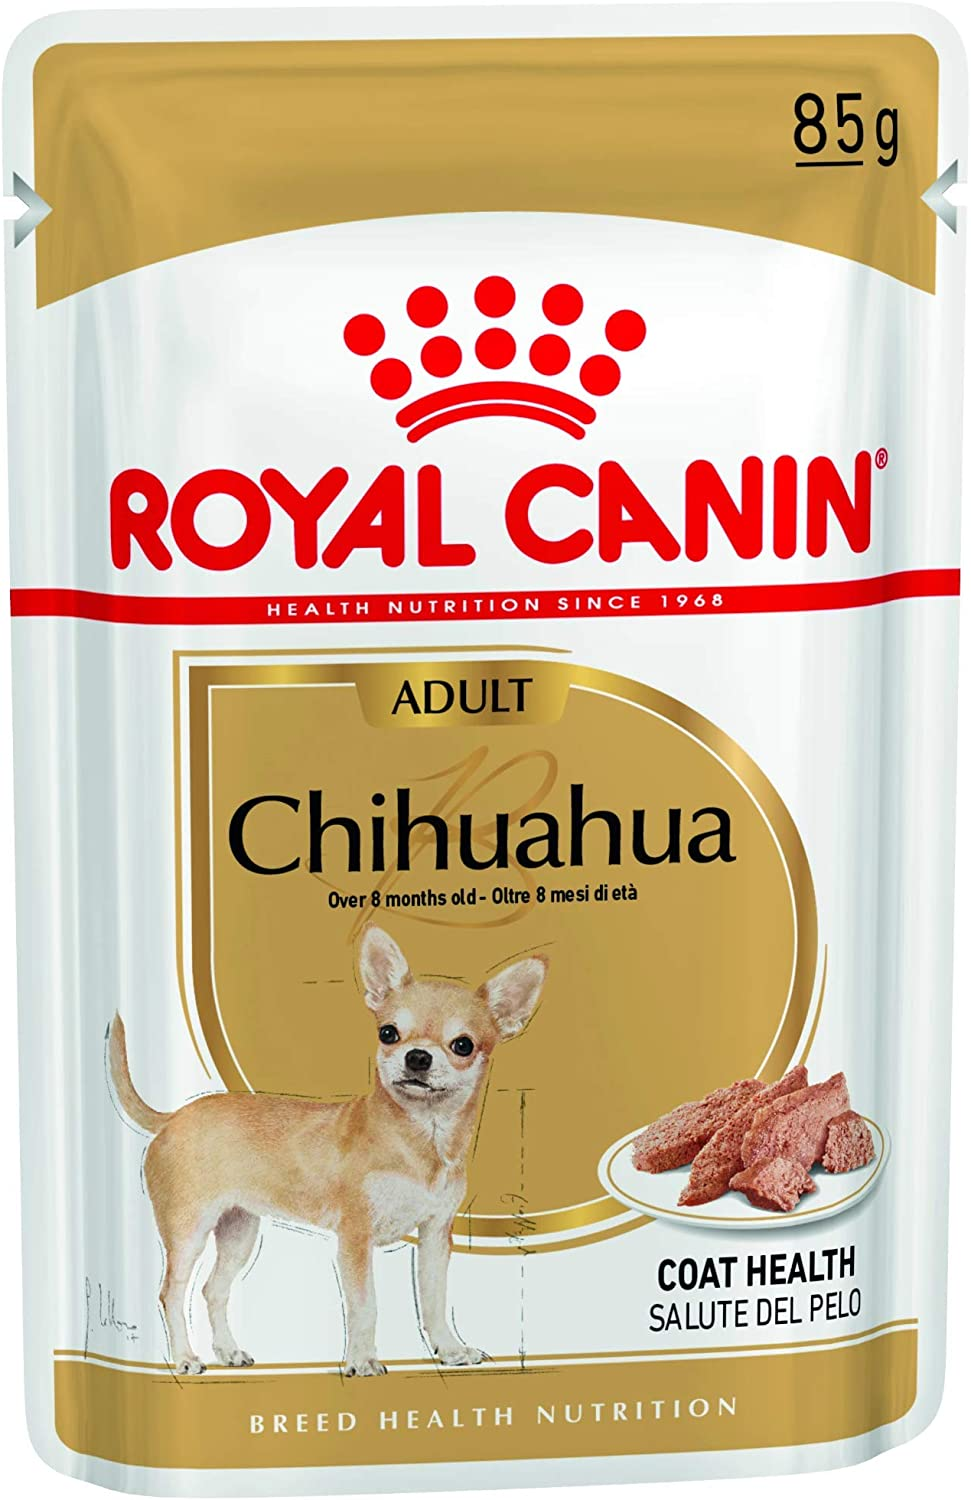 Royal Canine Adult Chihuahua Pouch - Caja 12 x 85 g (1020 g)